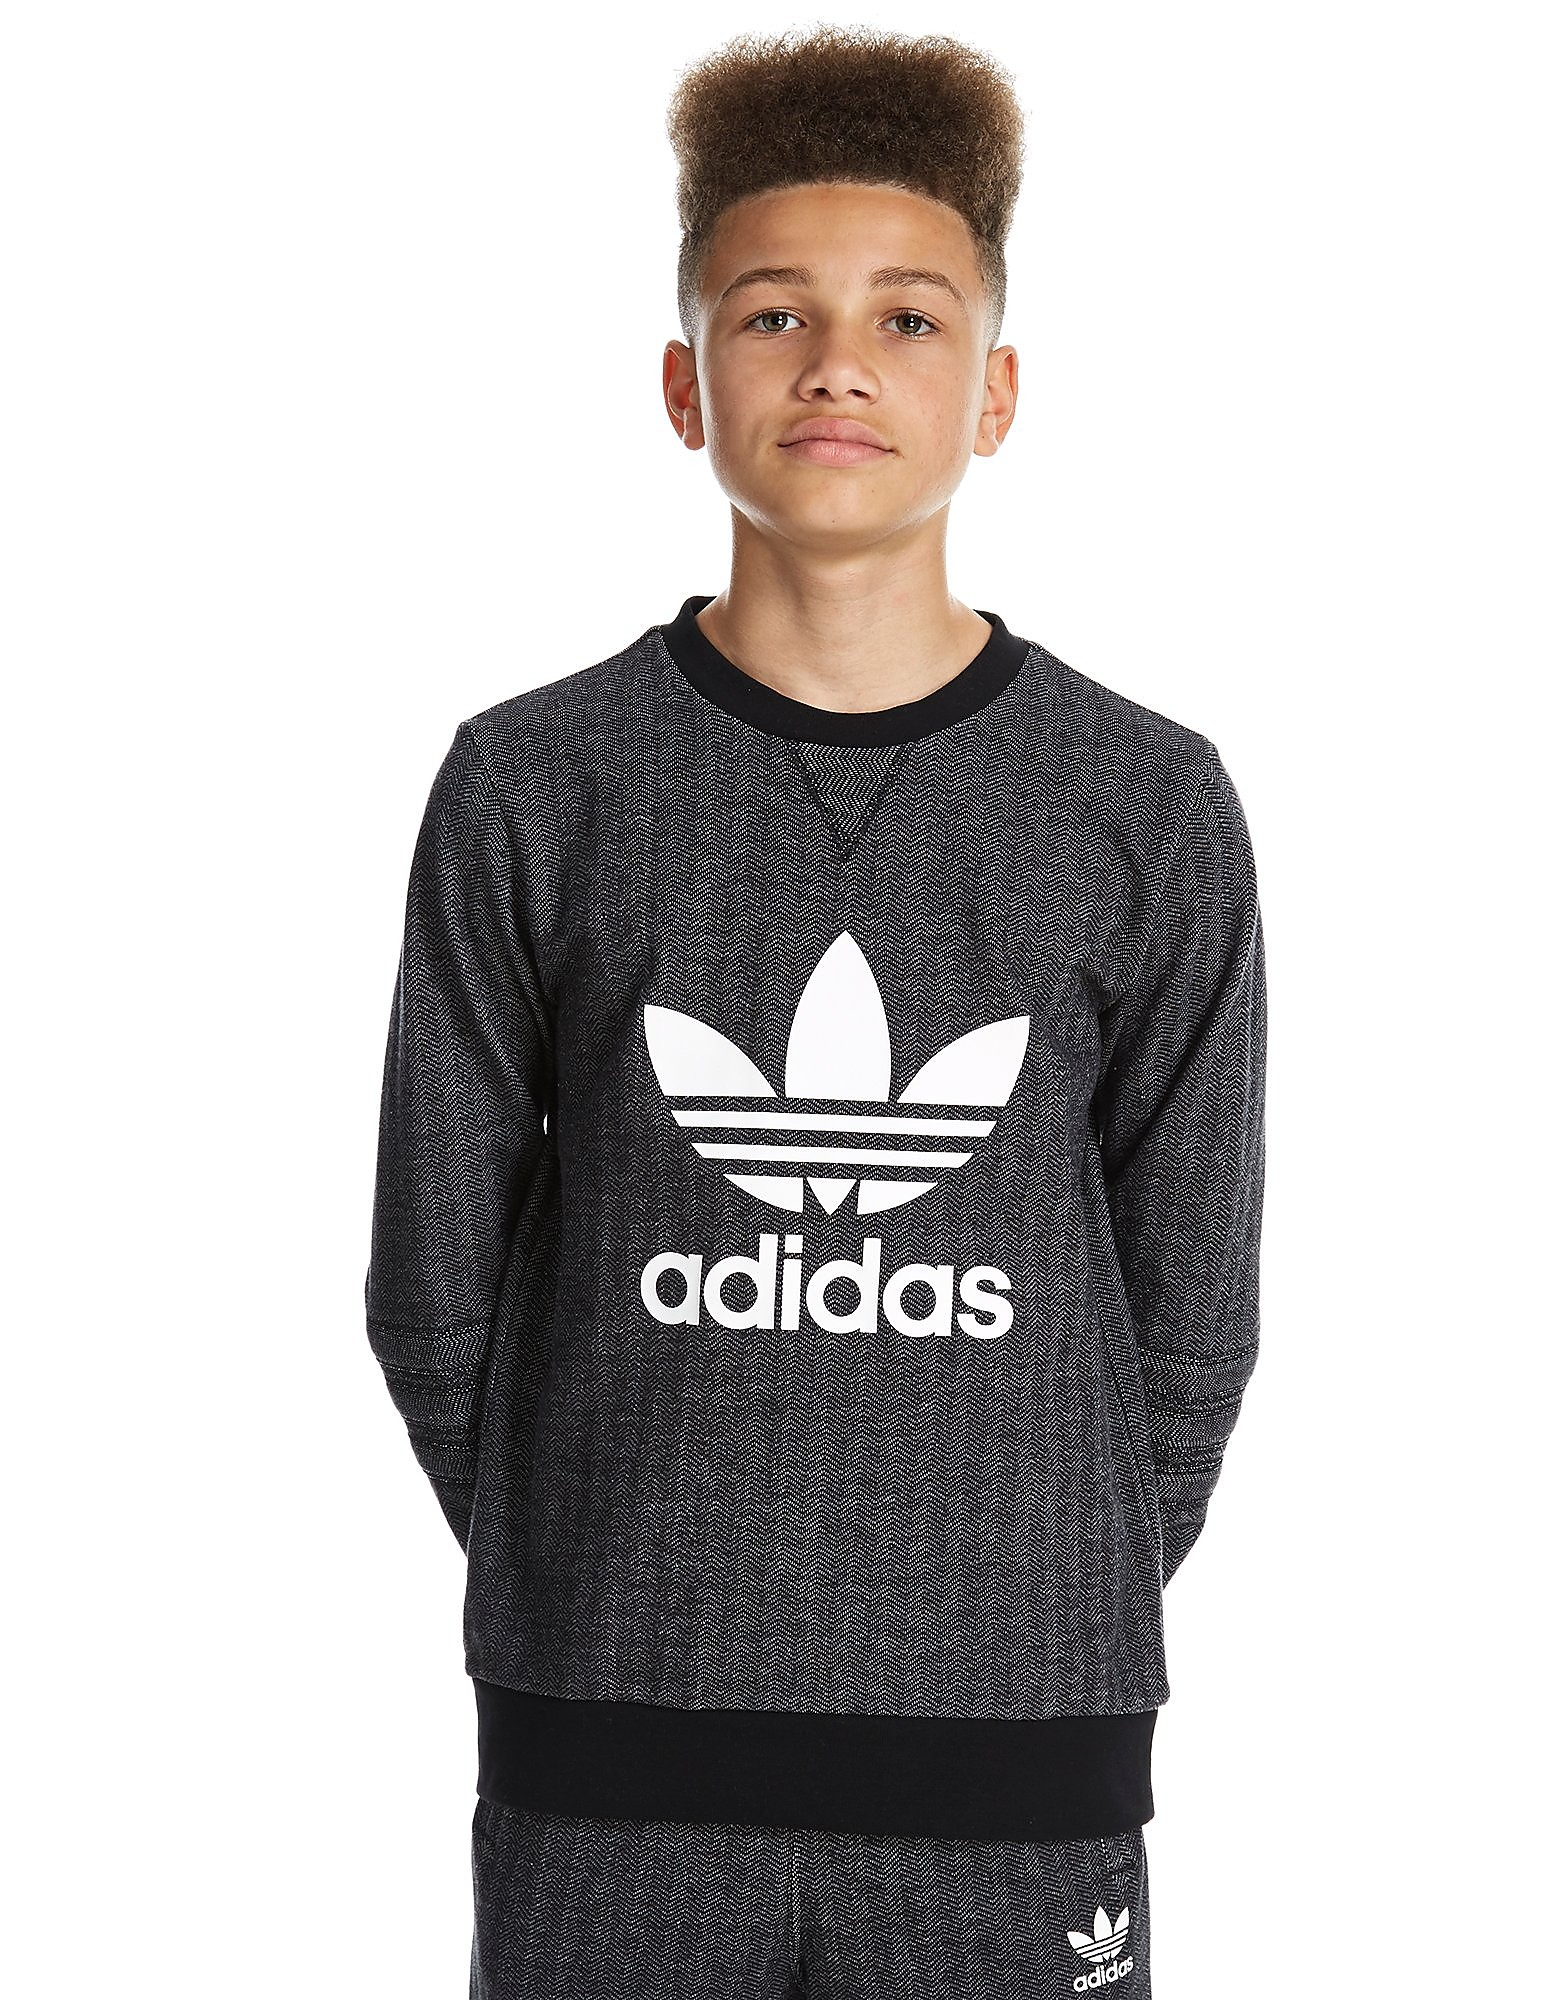 adidas Originals Trefoil Sweatshirt Junior